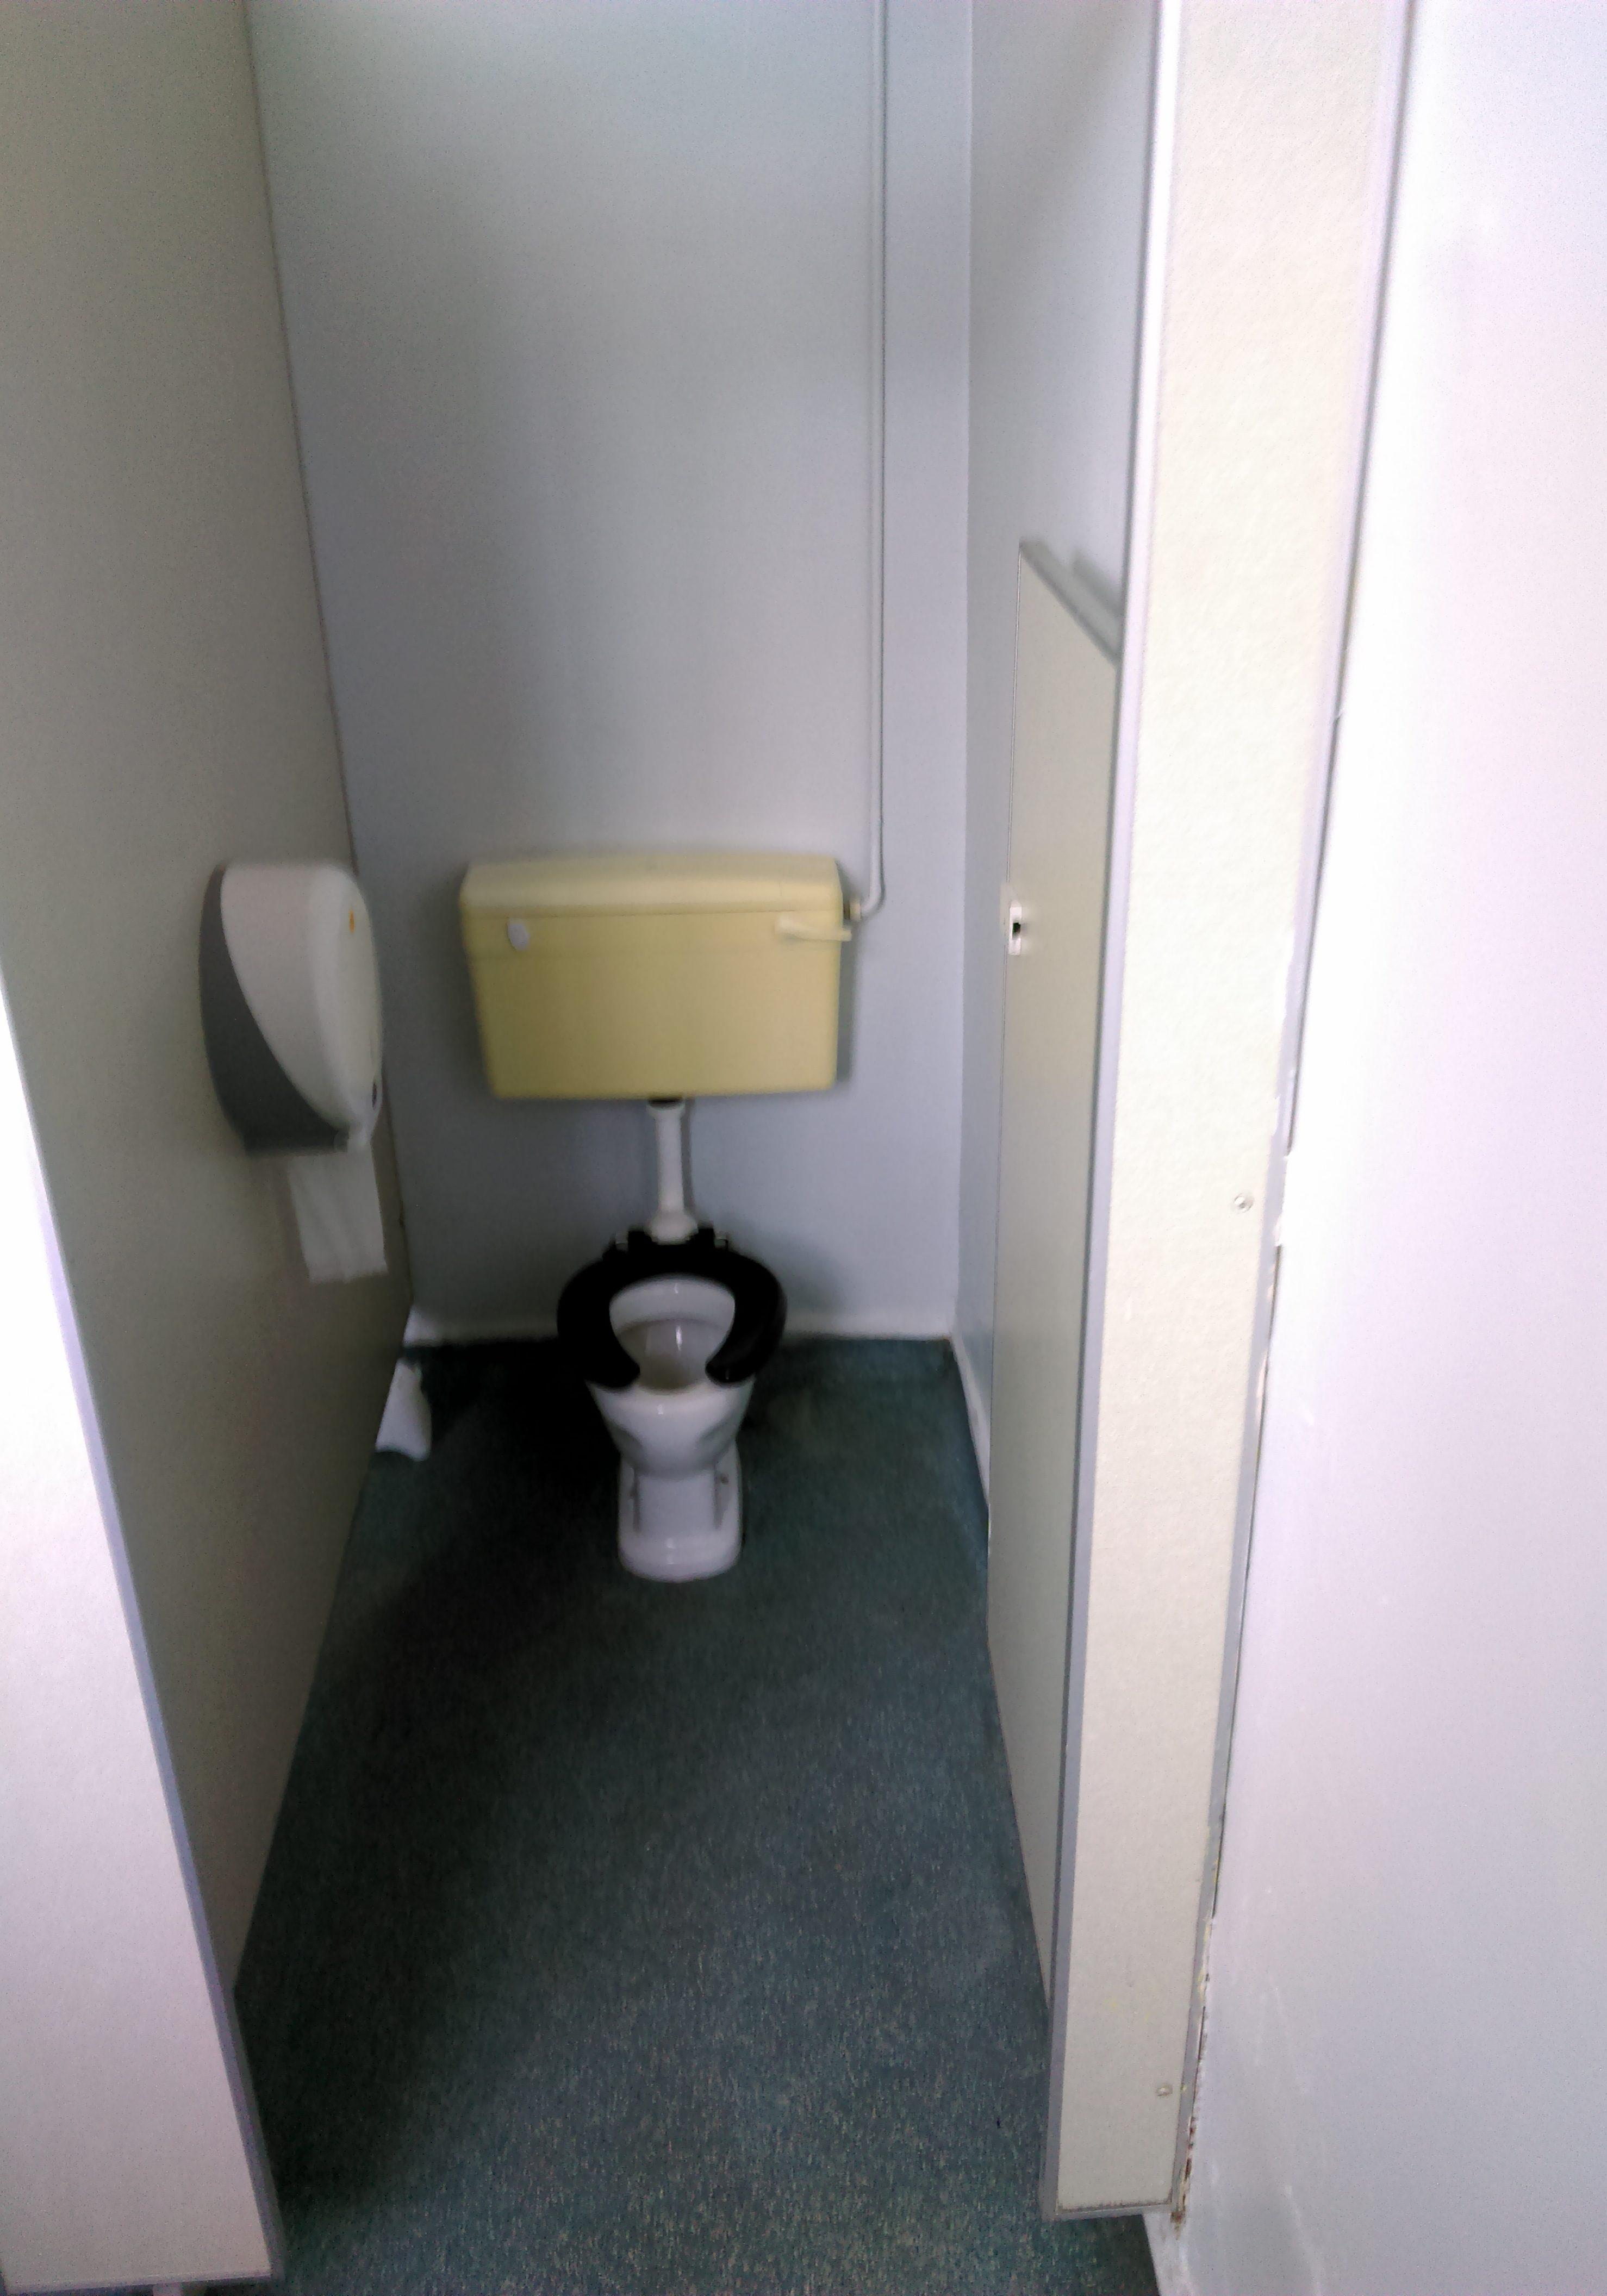 Before toilet